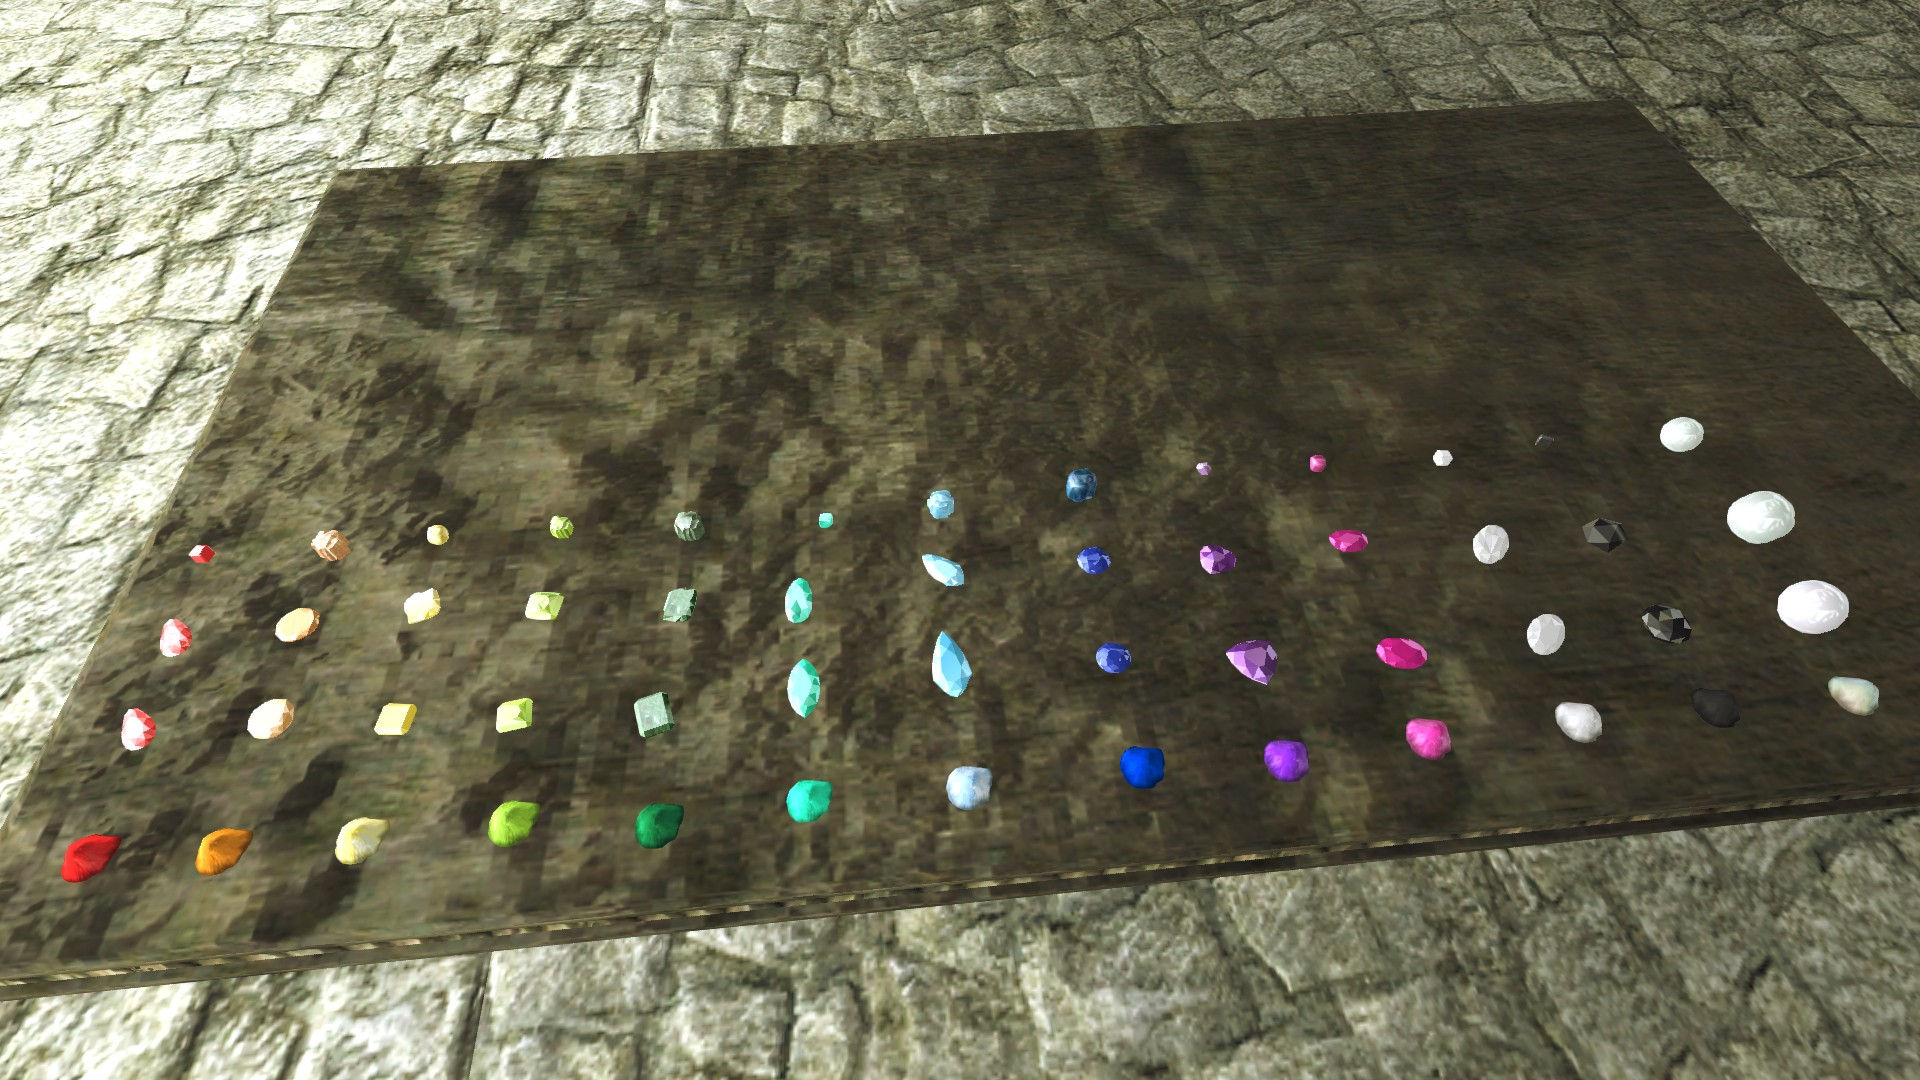 Display of all new gems and vanilla gems, as well as the corresponding dust